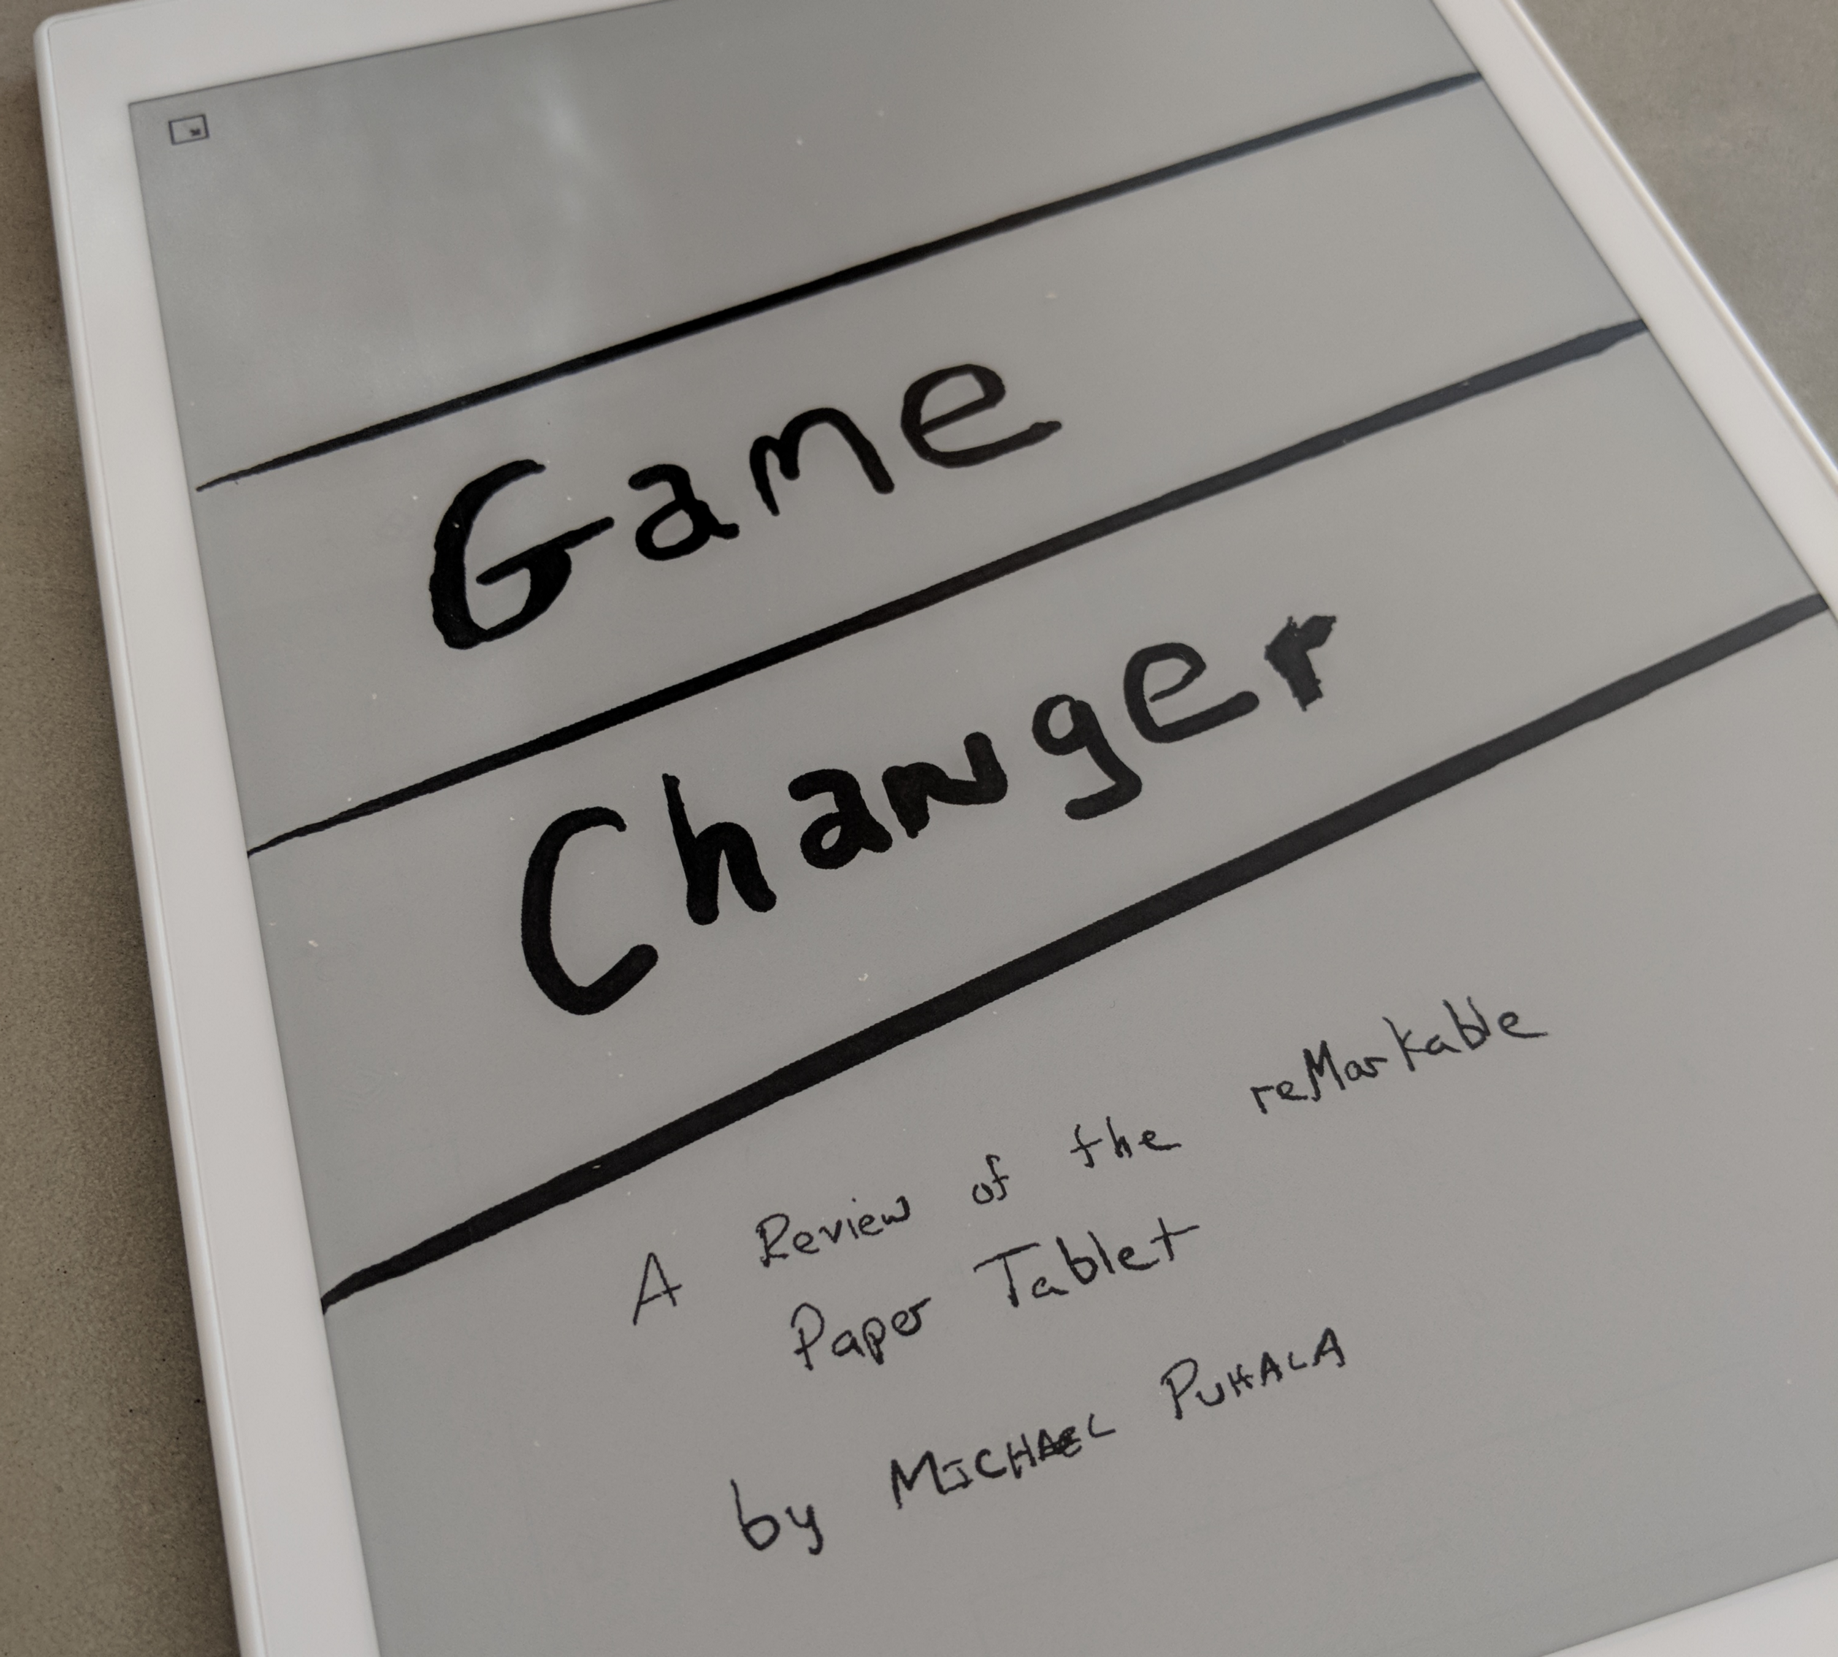 60 days with the reMarkable 'paper tablet' - Puhala Blog